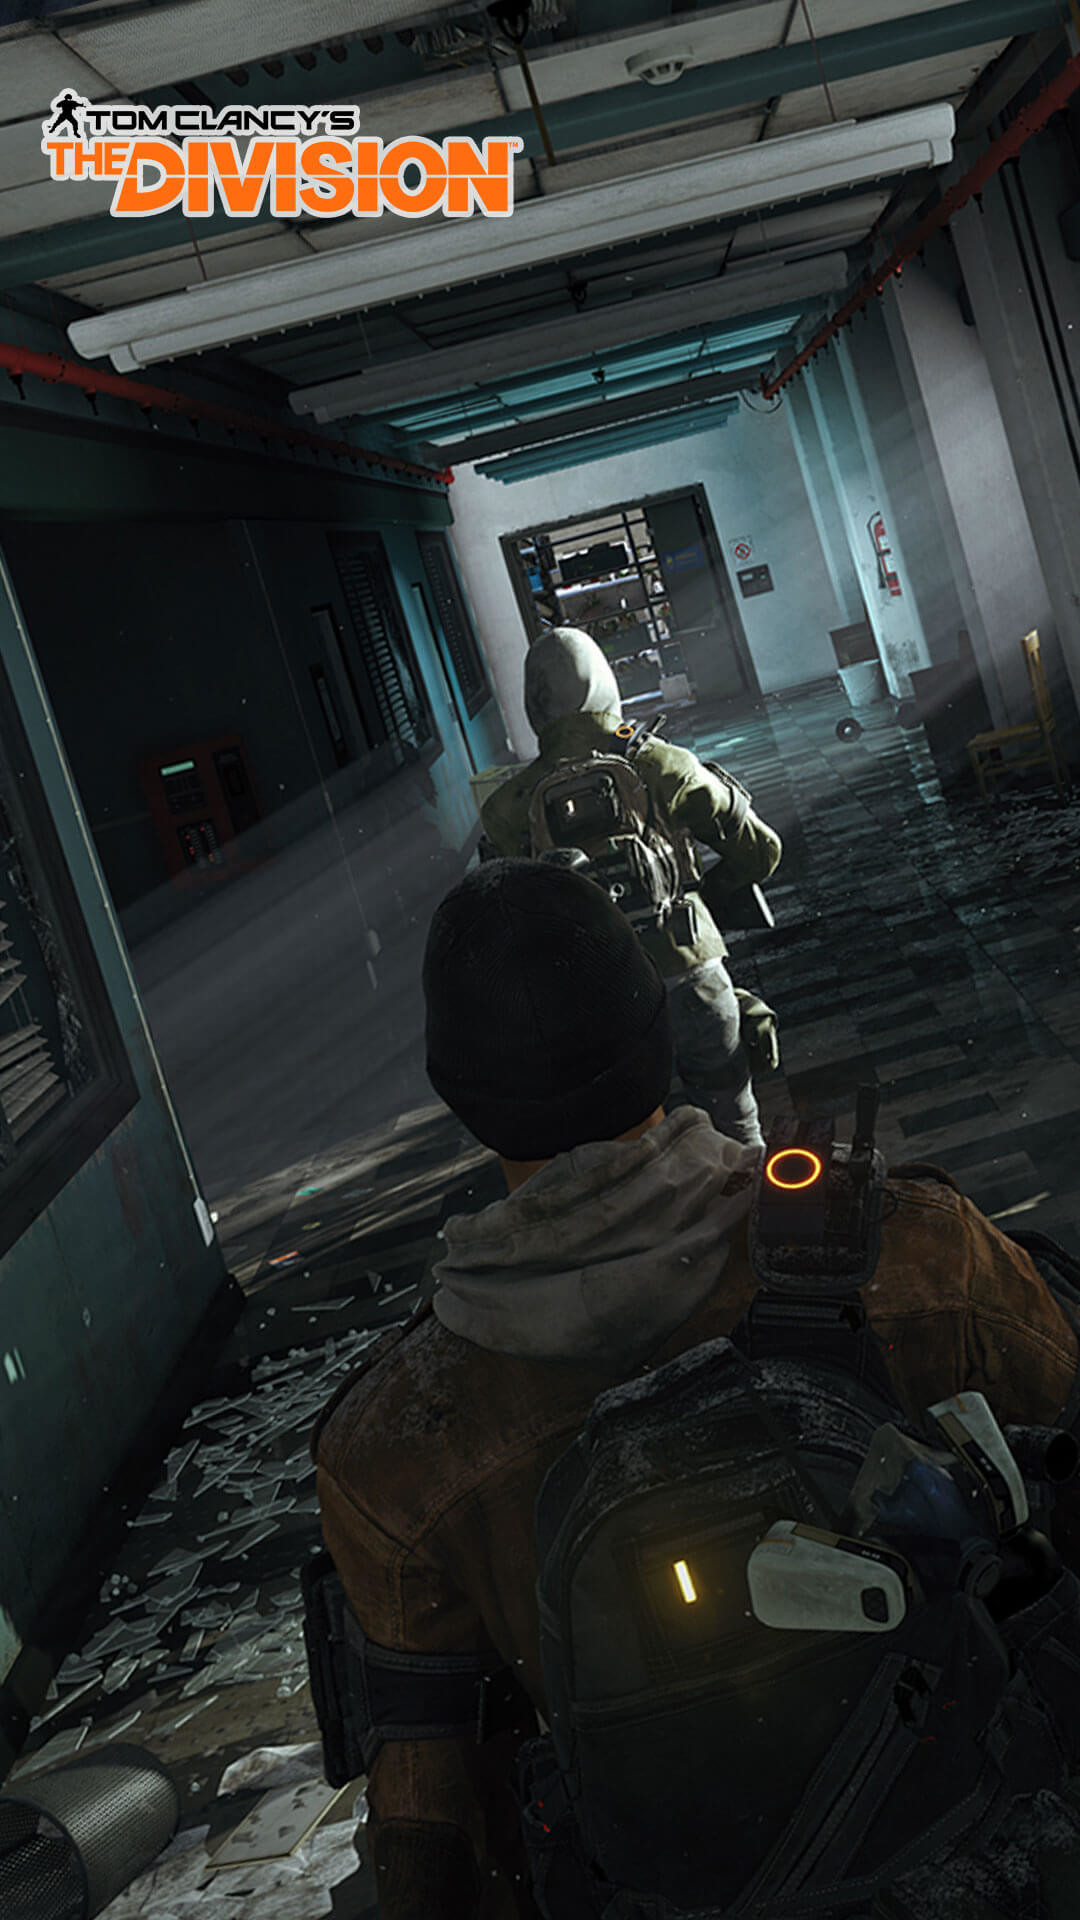 The Division Wallpaper For iOS 8 HD